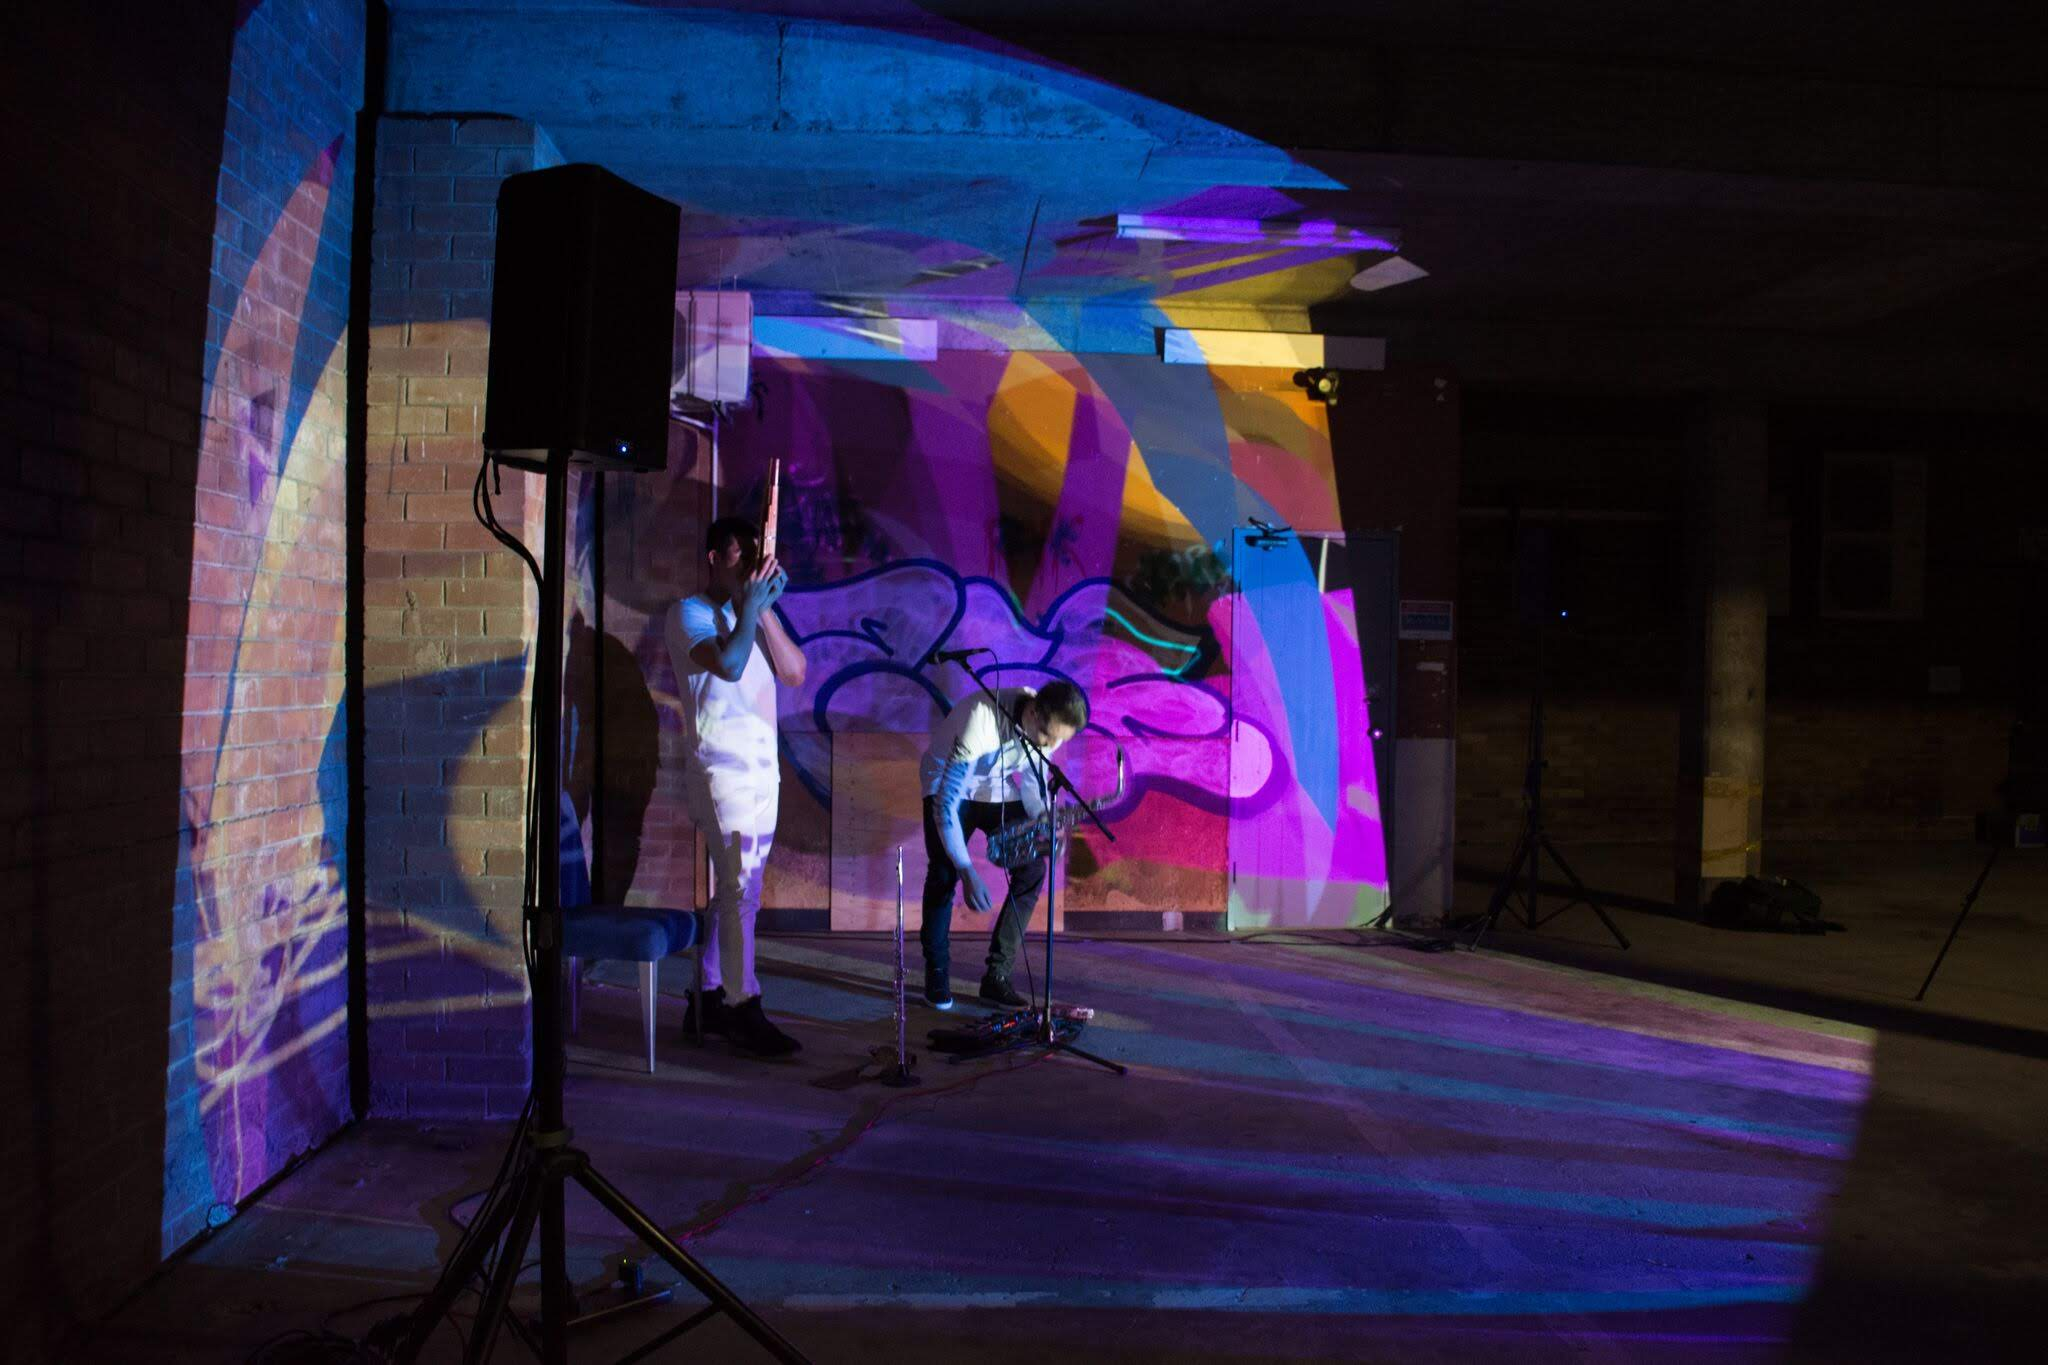 Improv loop machine performance with Tom Duck (Saxophone) and Todd Fuller (Visuals) @ the opening of